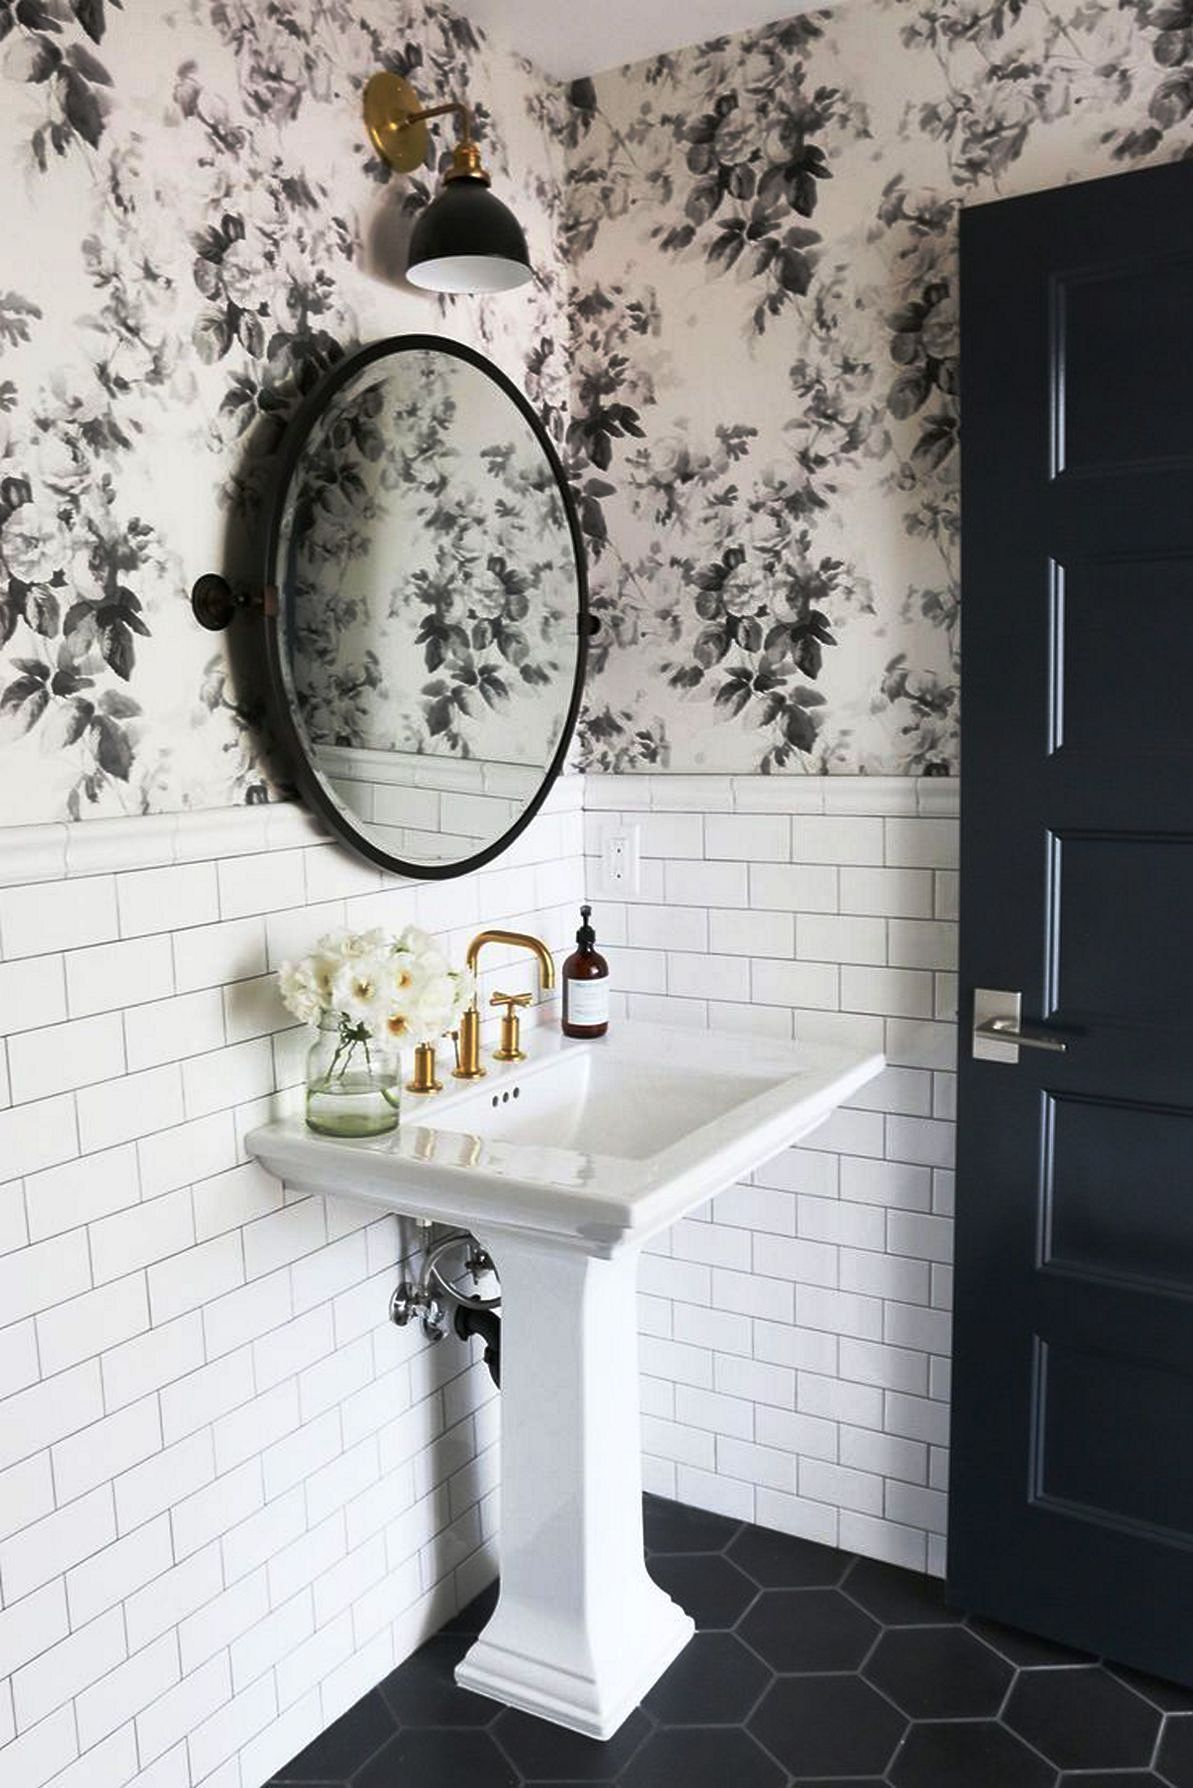 Bathroom trends 2021 the perfect new look for your bathroom remodeling 25